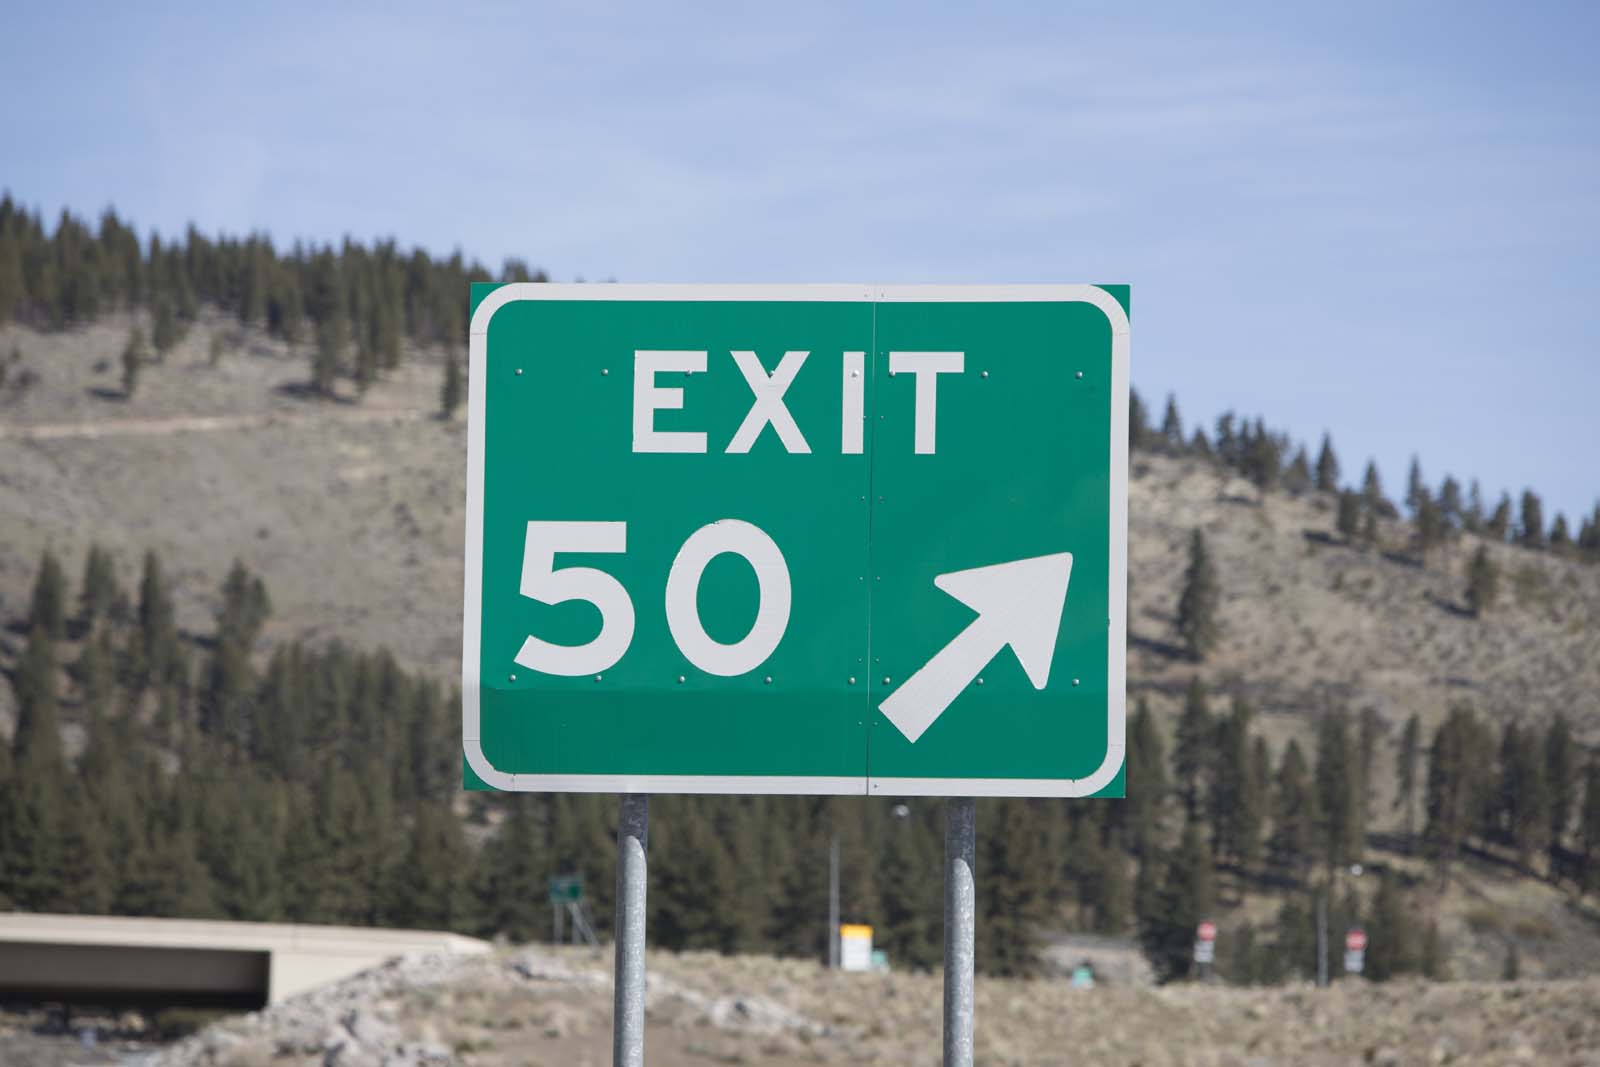 A green freeway exit sign on I-580 for exit 50.